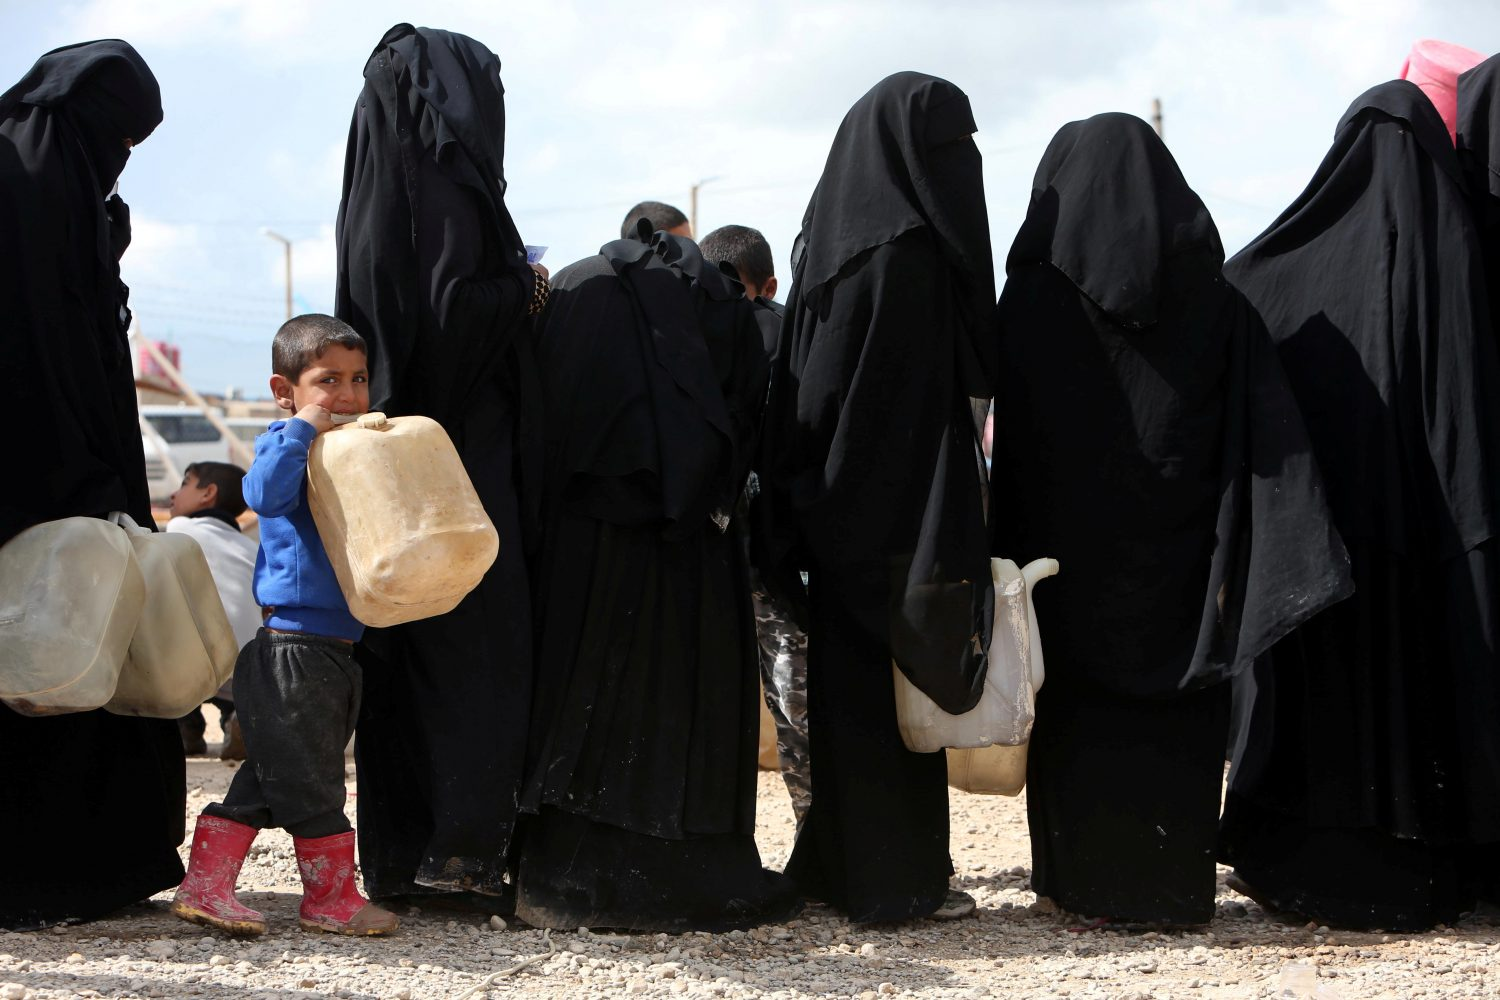 Women stand in line to get fuel at al-Hol displacement camp in Hasaka governorate, Syria April 1, 2019. REUTERS/Ali Hashisho/File Photo